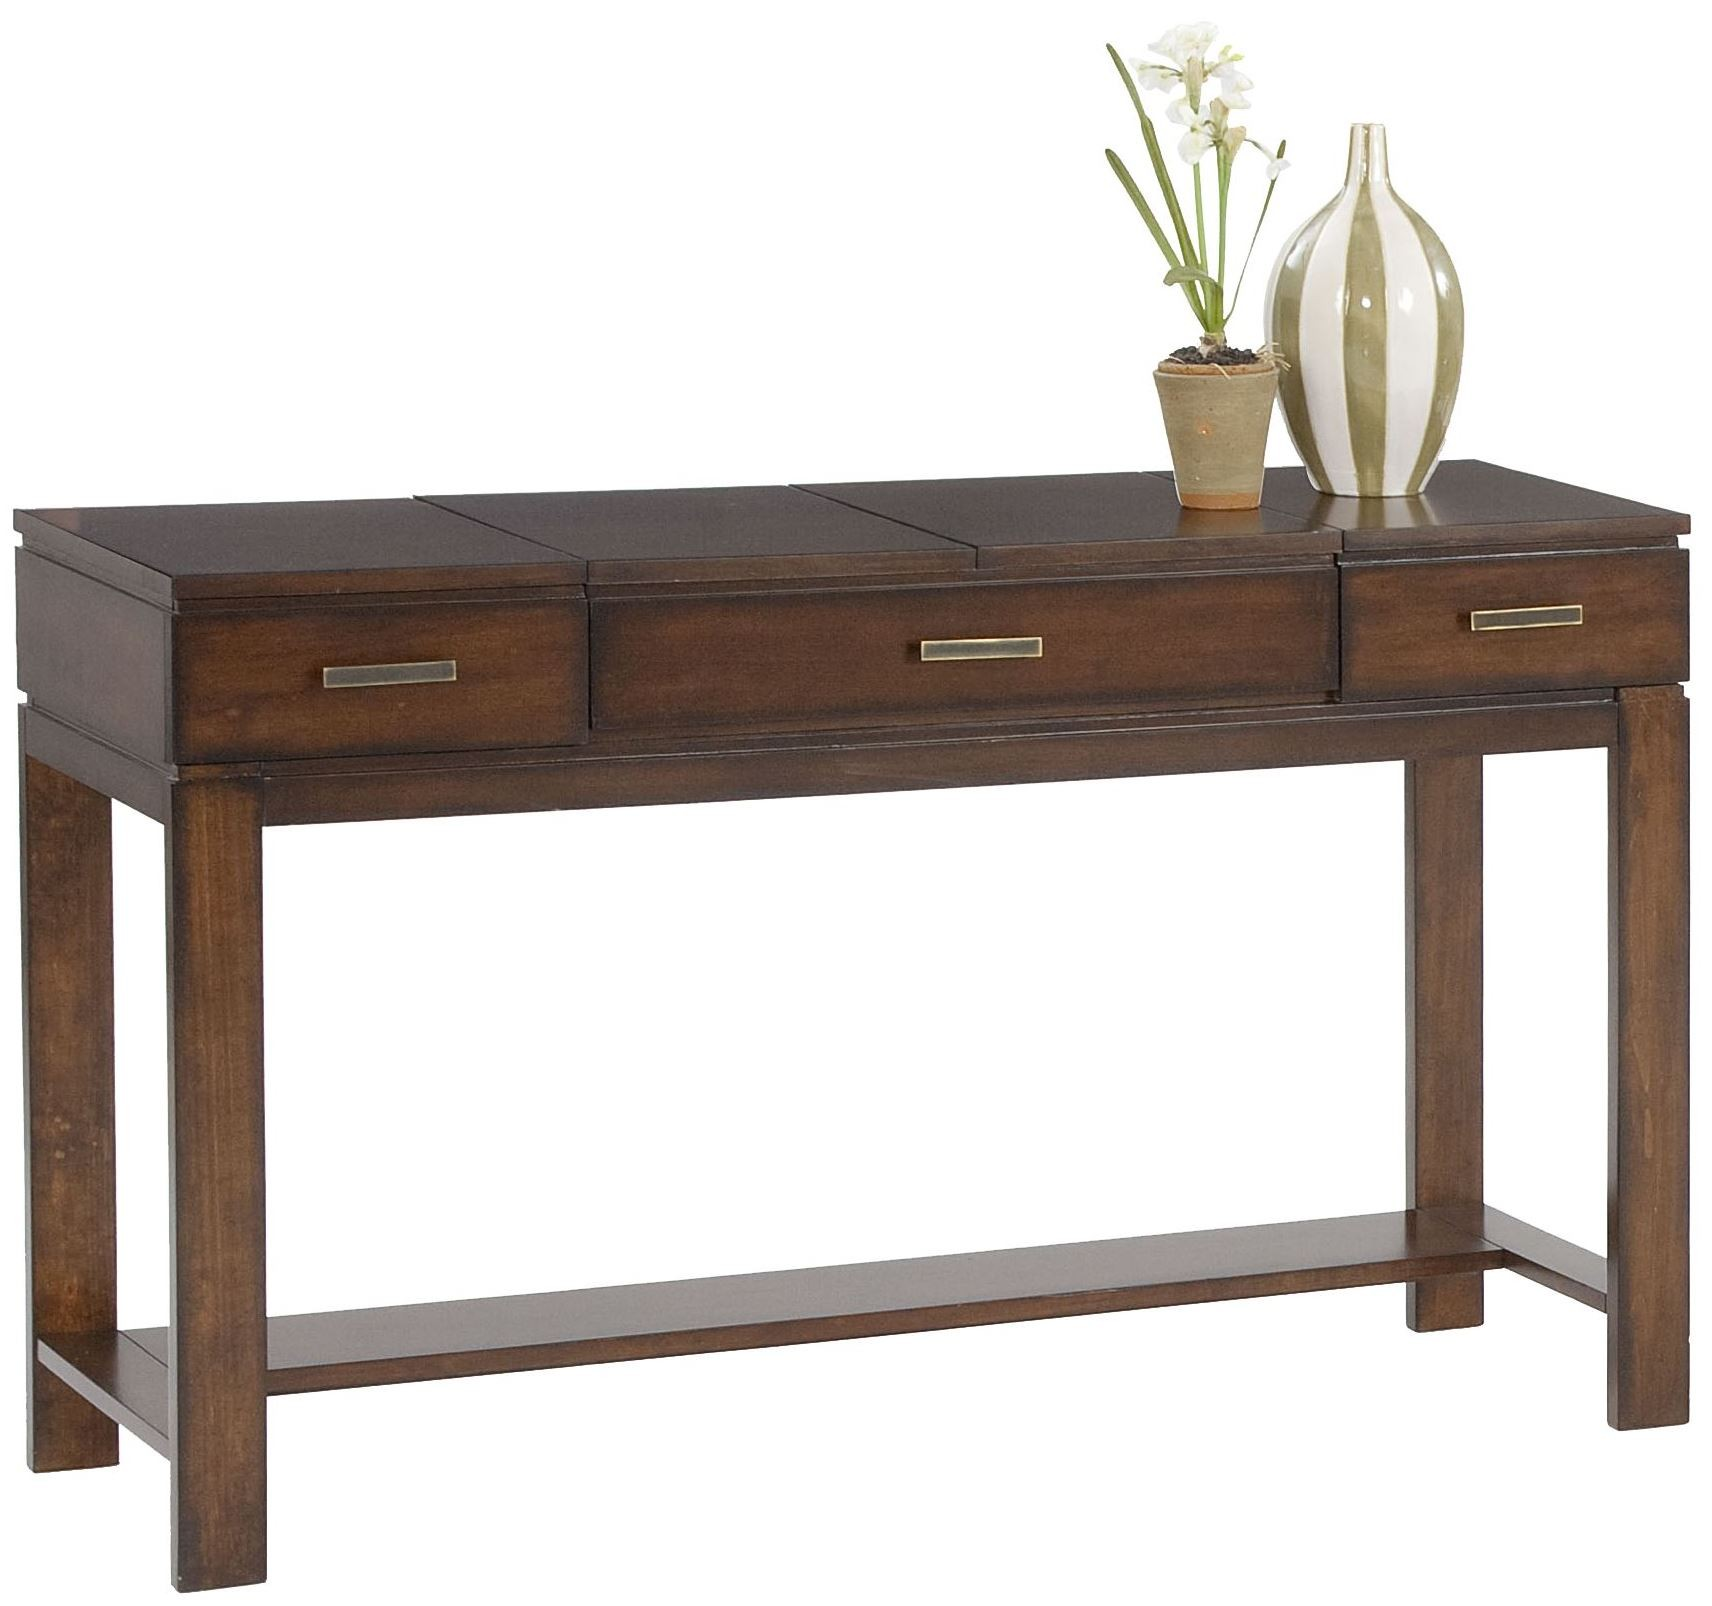 miramar cherry veneer sofa table desk from progressive furniture coleman furniture. Black Bedroom Furniture Sets. Home Design Ideas